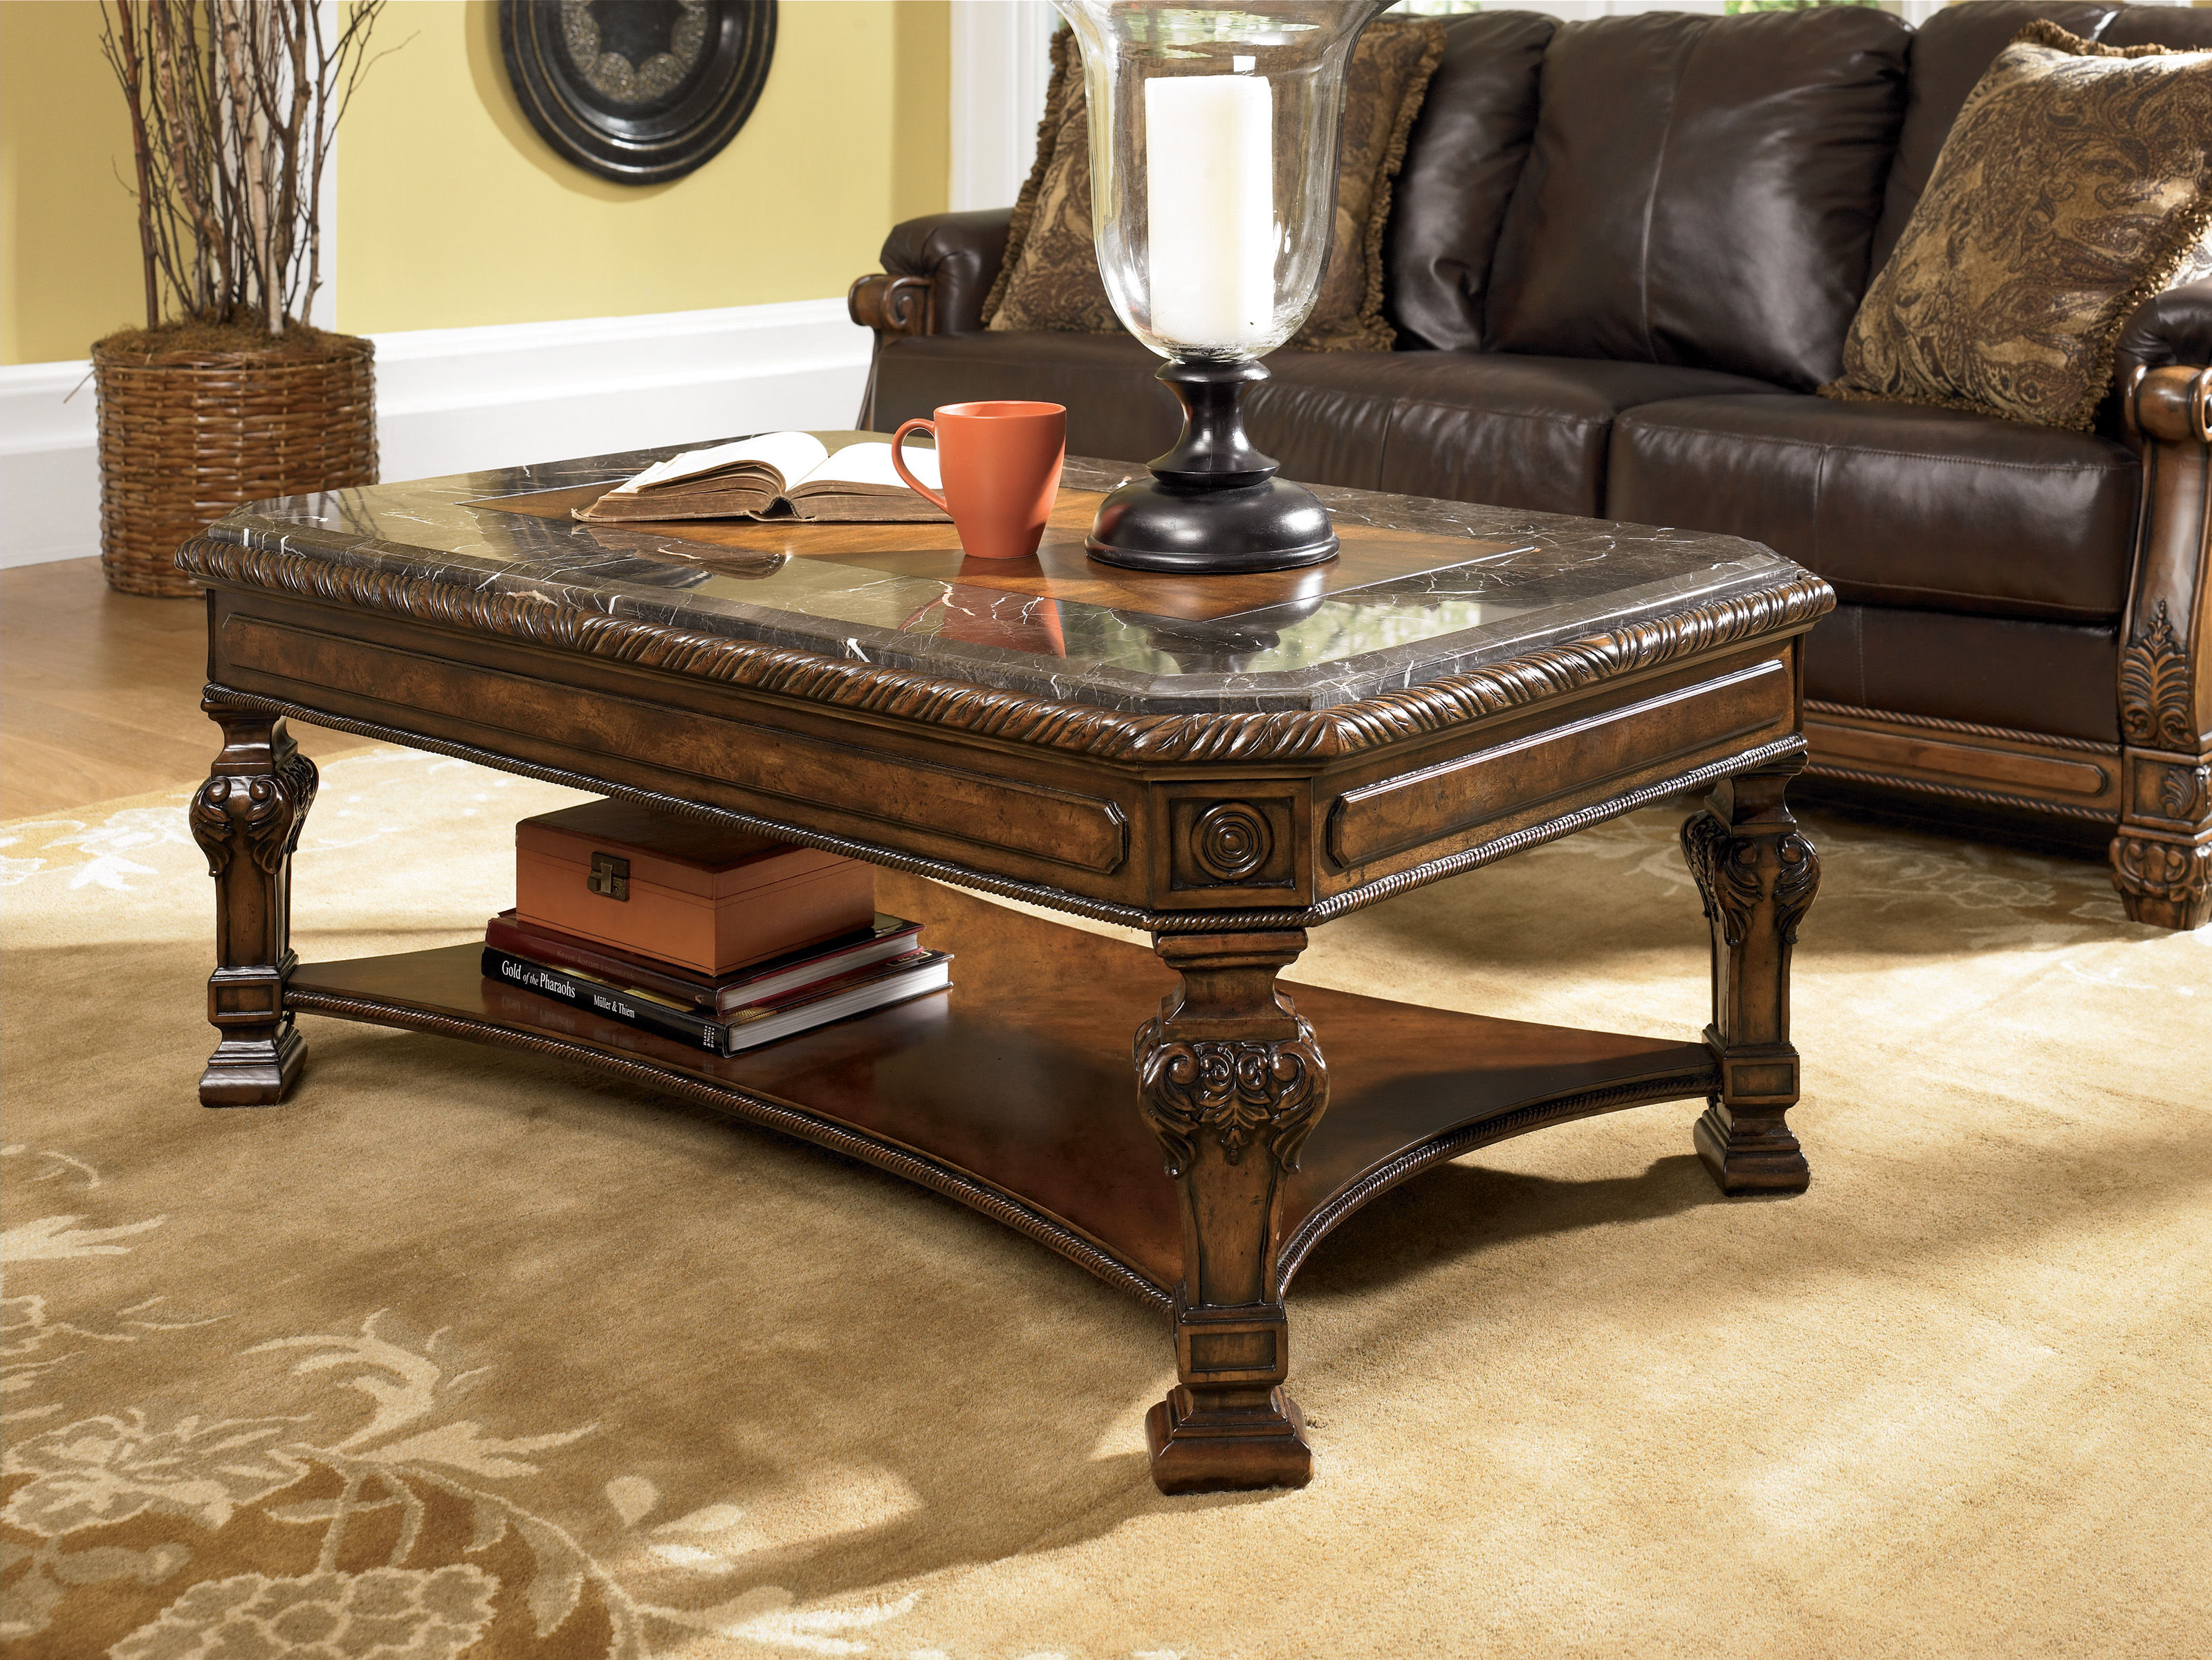 New hot deal deal of day daily deal 82 sold discontinued casa mollino old world dark brown cocktail table